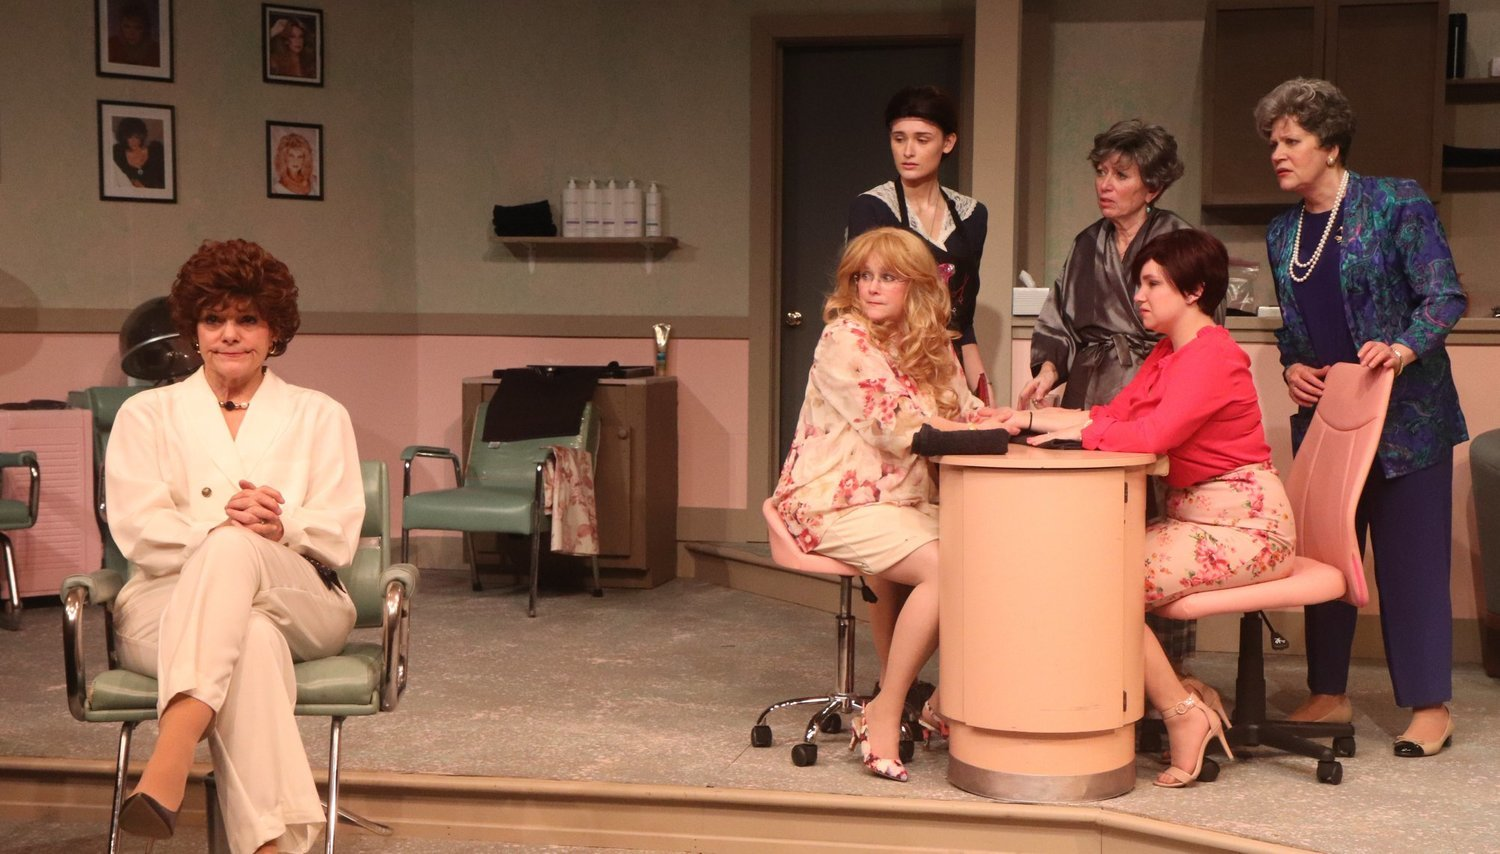 BWW Review: STEEL MAGNOLIAS at The Chatham Playhouse